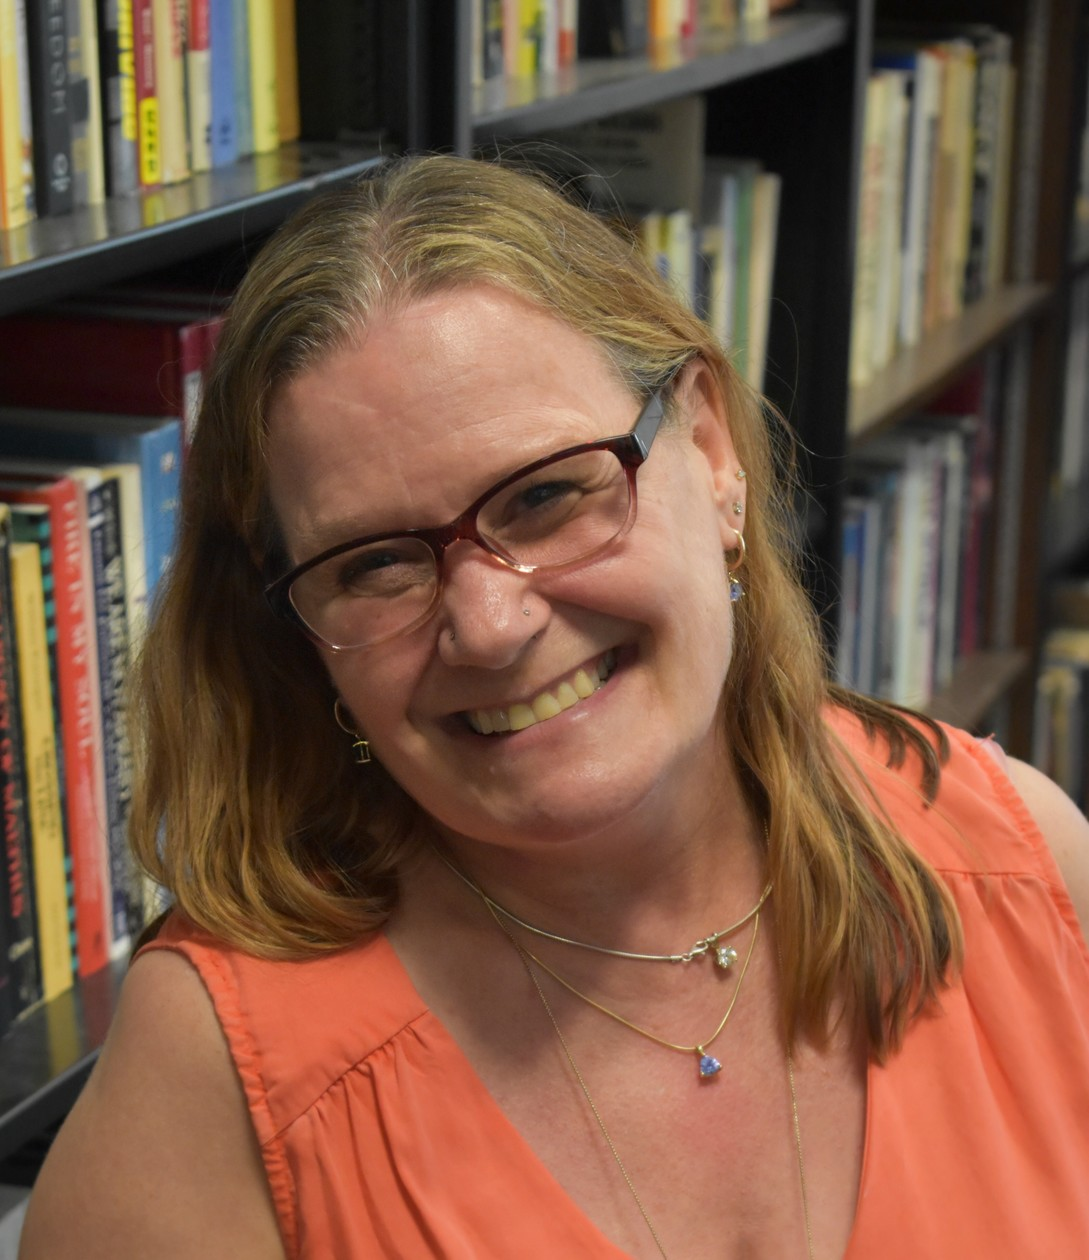 Congratulations to the 2019 SWS Distinguished Feminist Lecturer Award Winner Angela J. Hattery